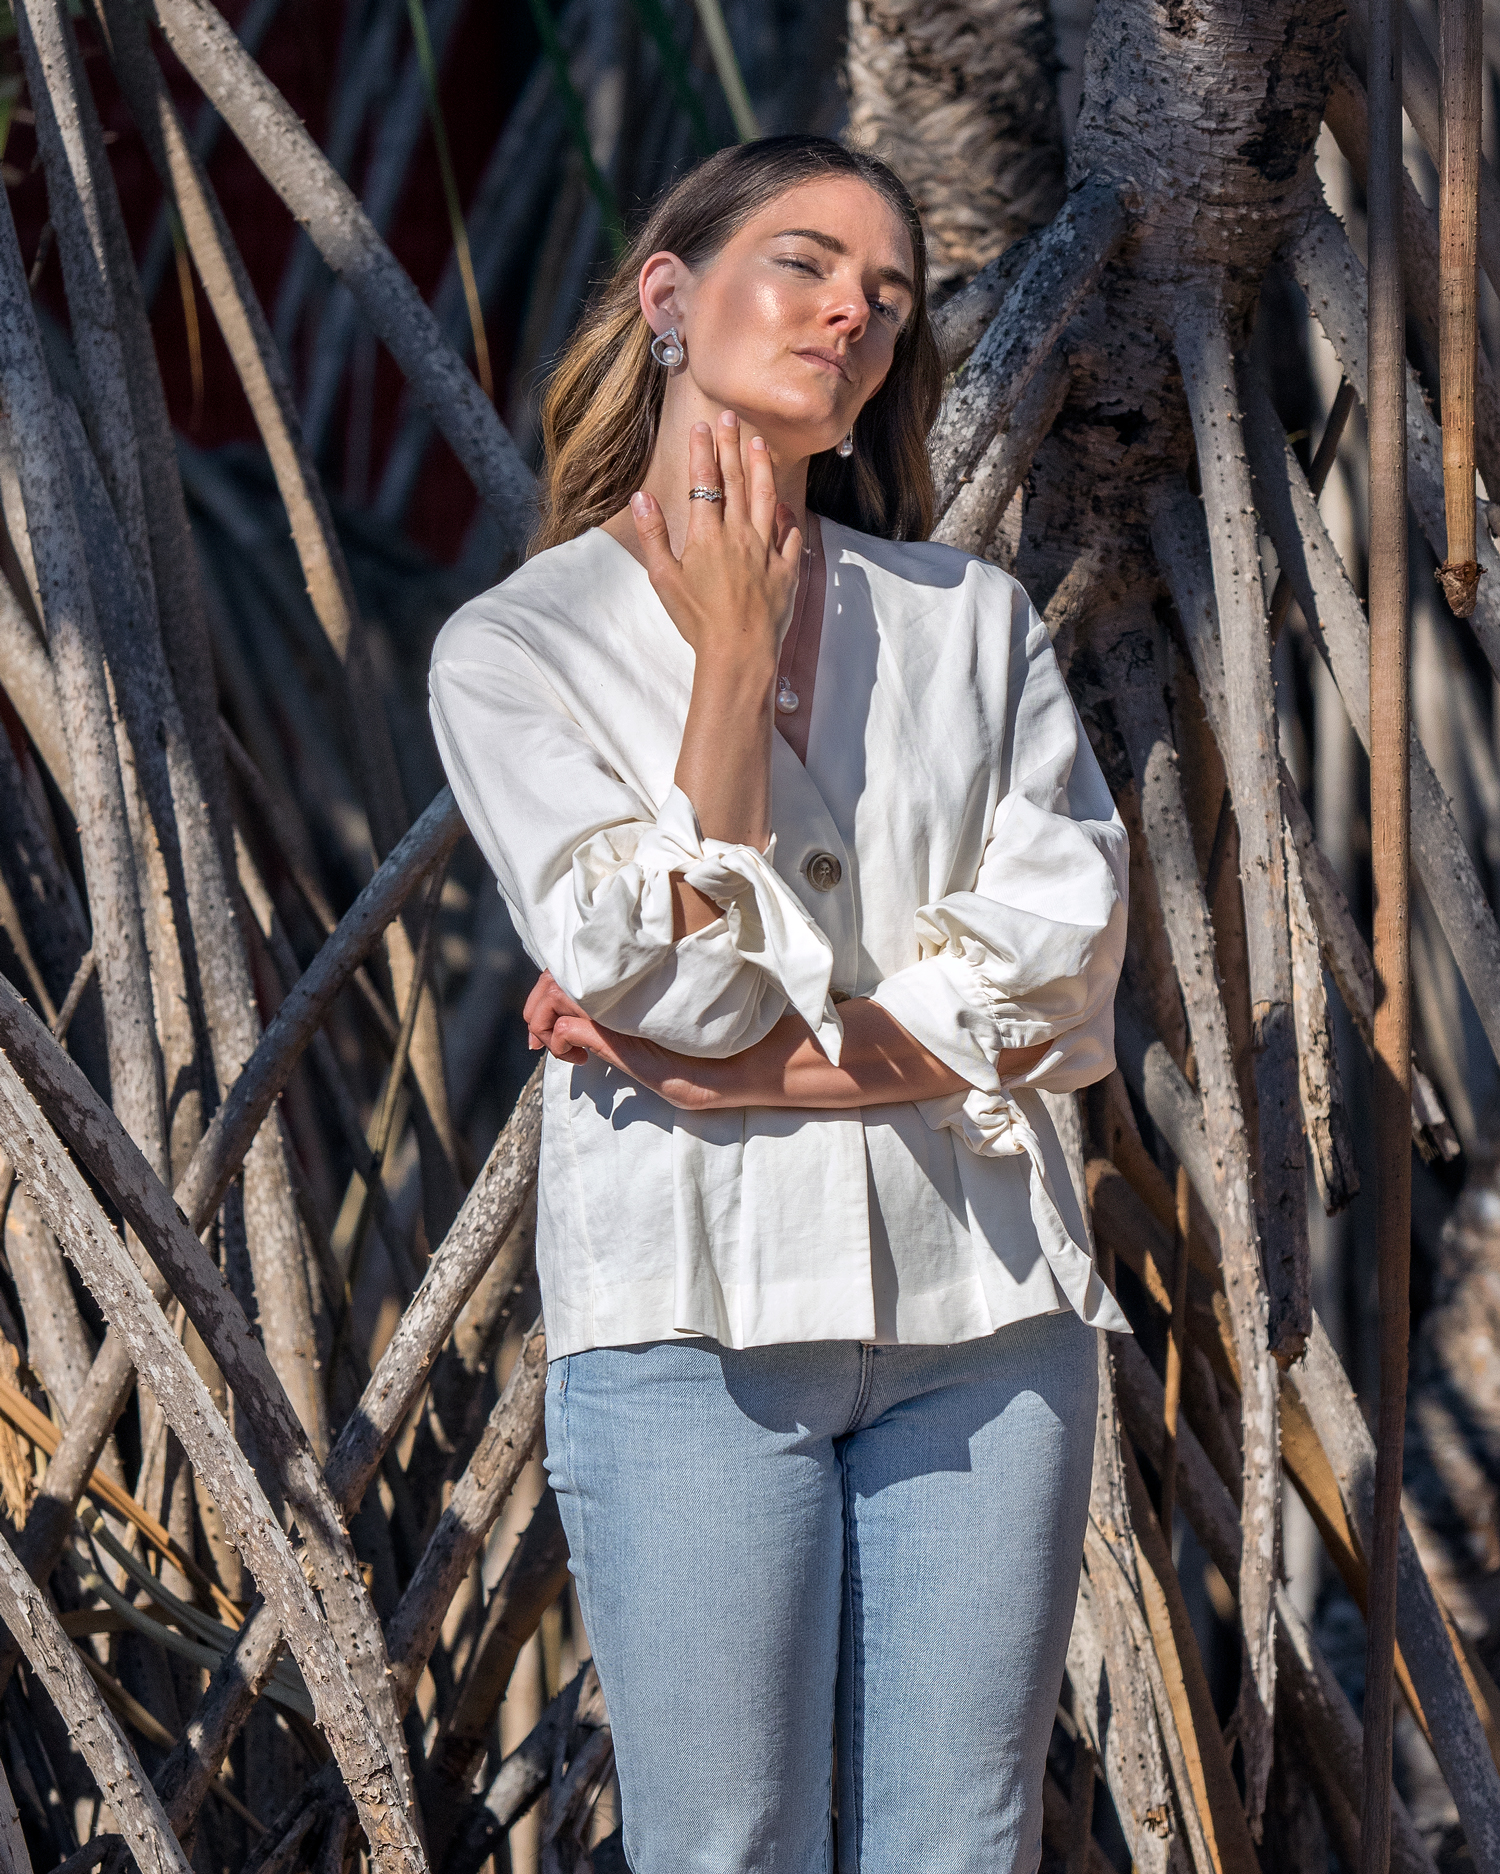 Allure South Sea Pearls Broome Inspiring Wit fashion blogger Jenelle Witty at Cable Beach Club